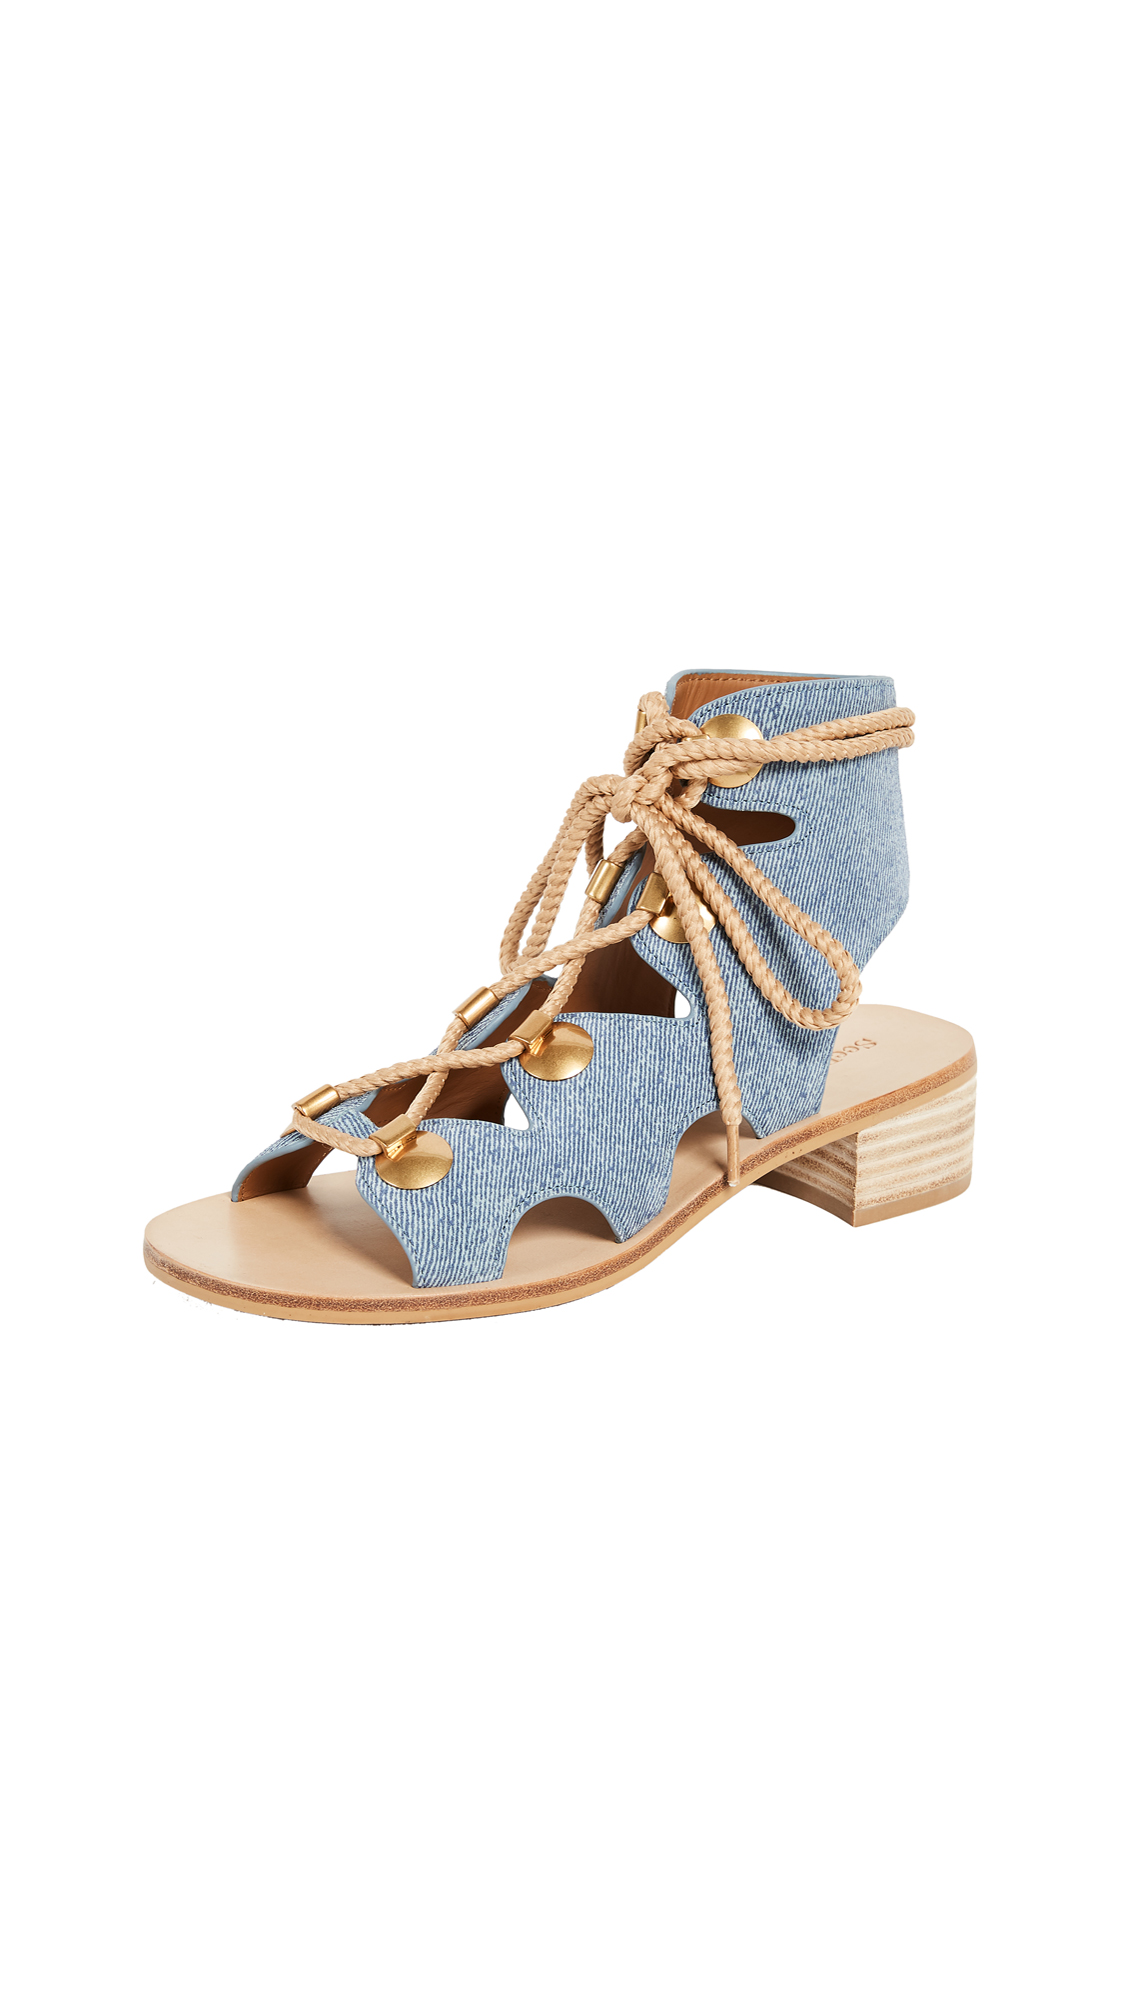 See by Chloe Alabama City Gladiator Sandals - Denim Chiaro